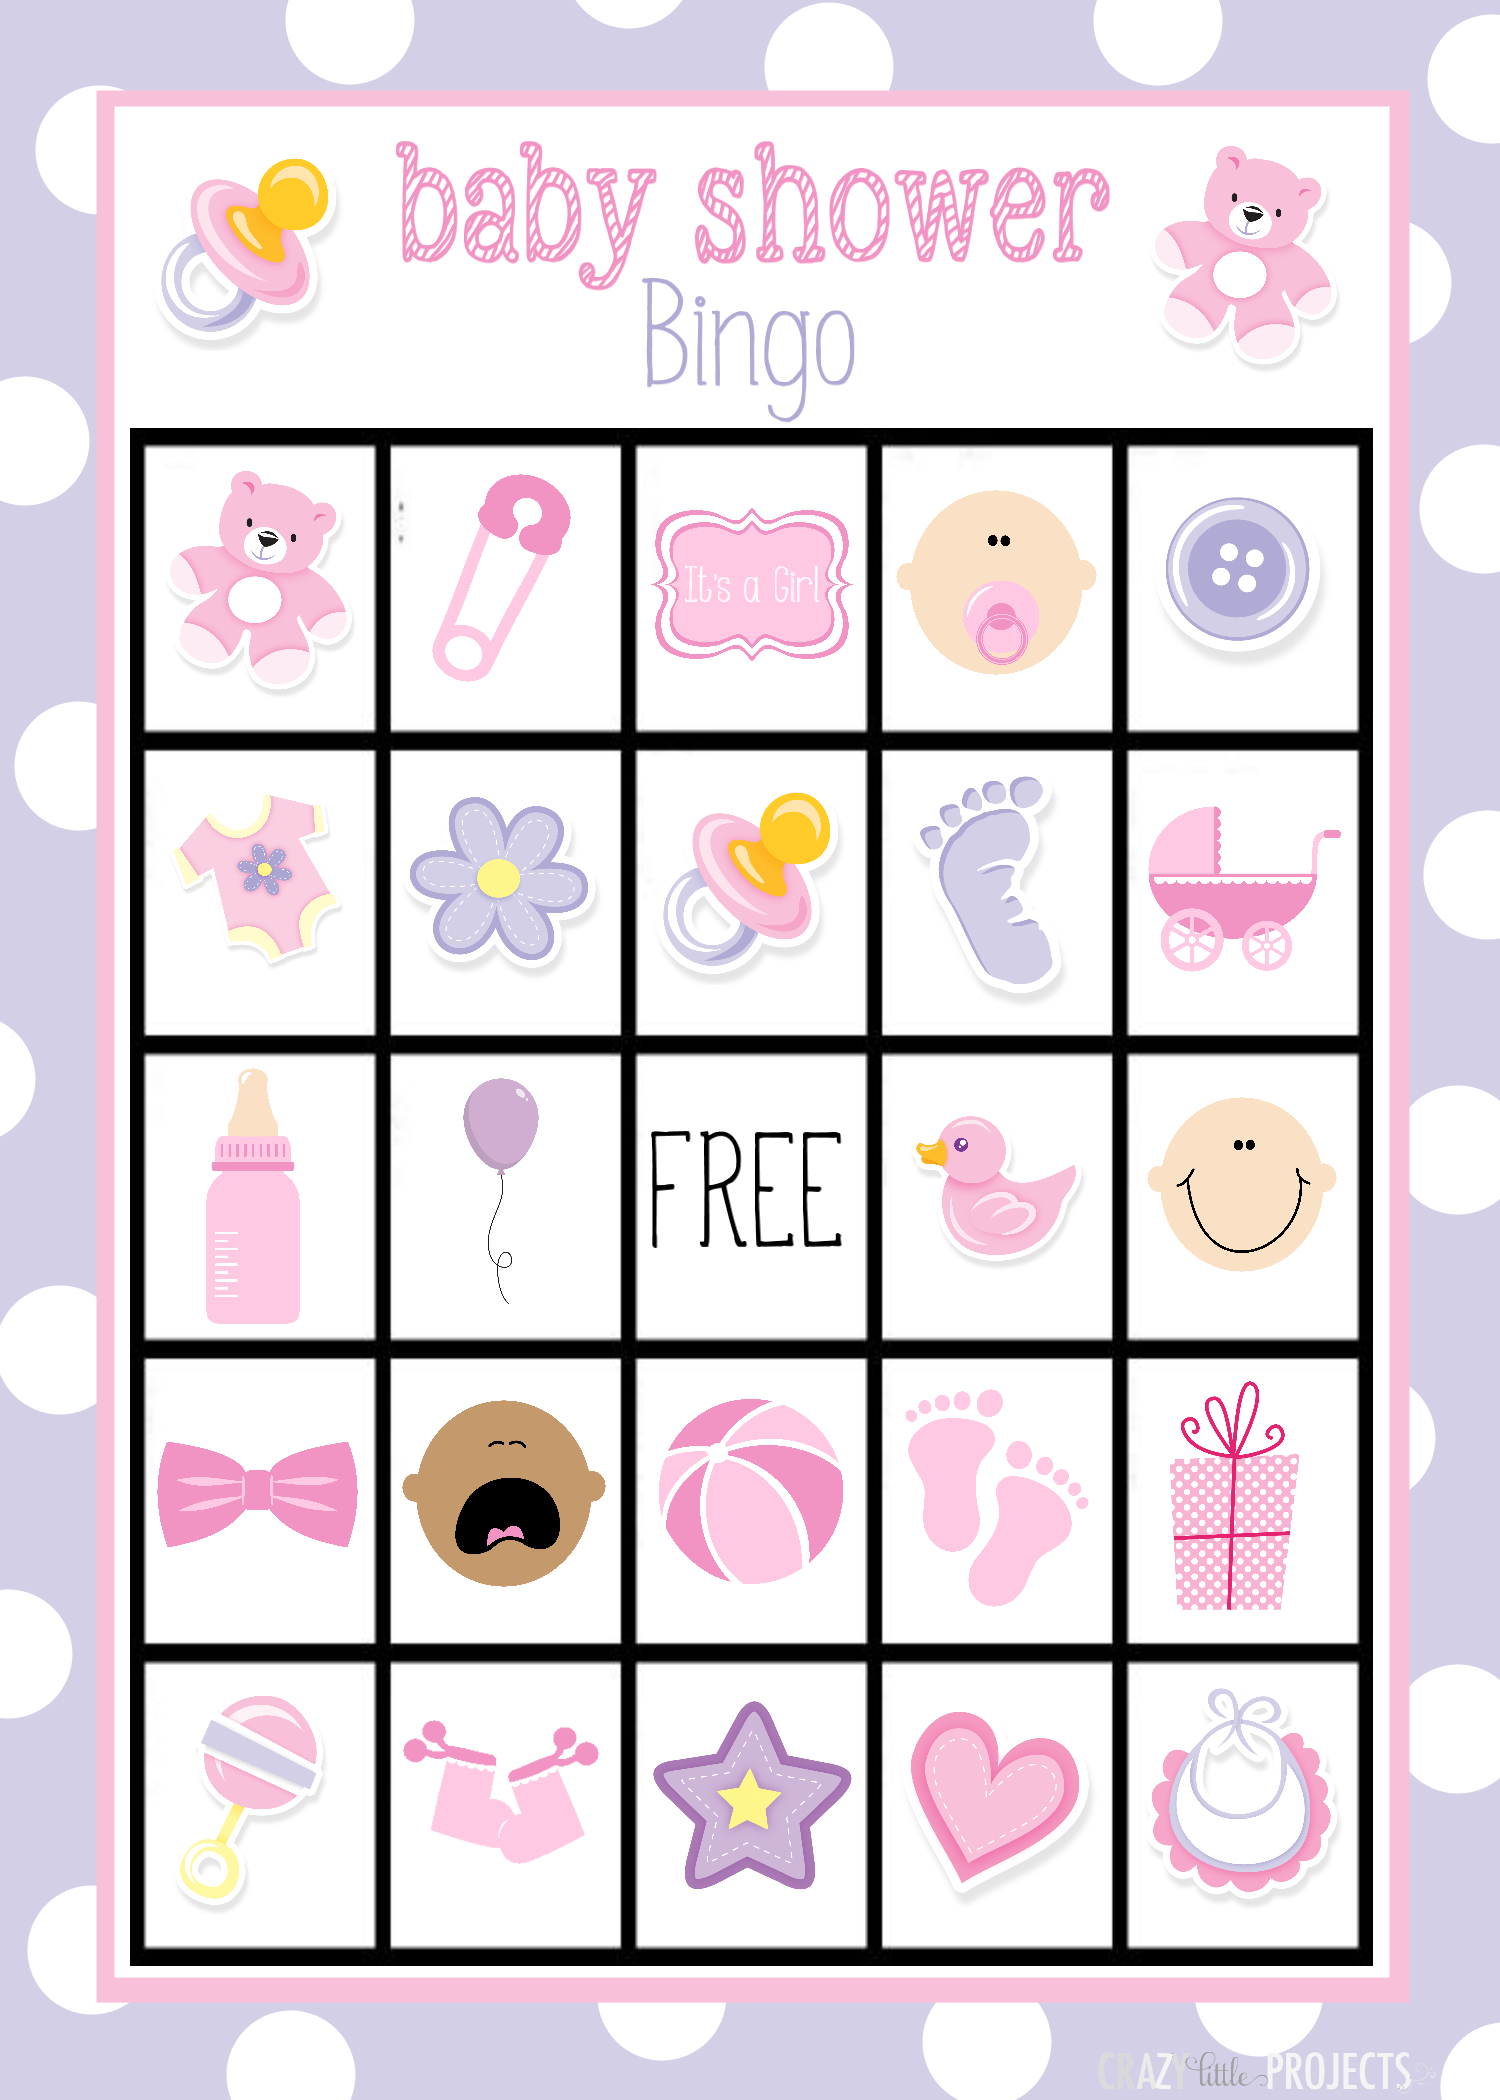 Baby Shower Bingo Cards - Free Printable Baby Shower Bingo Cards Pdf